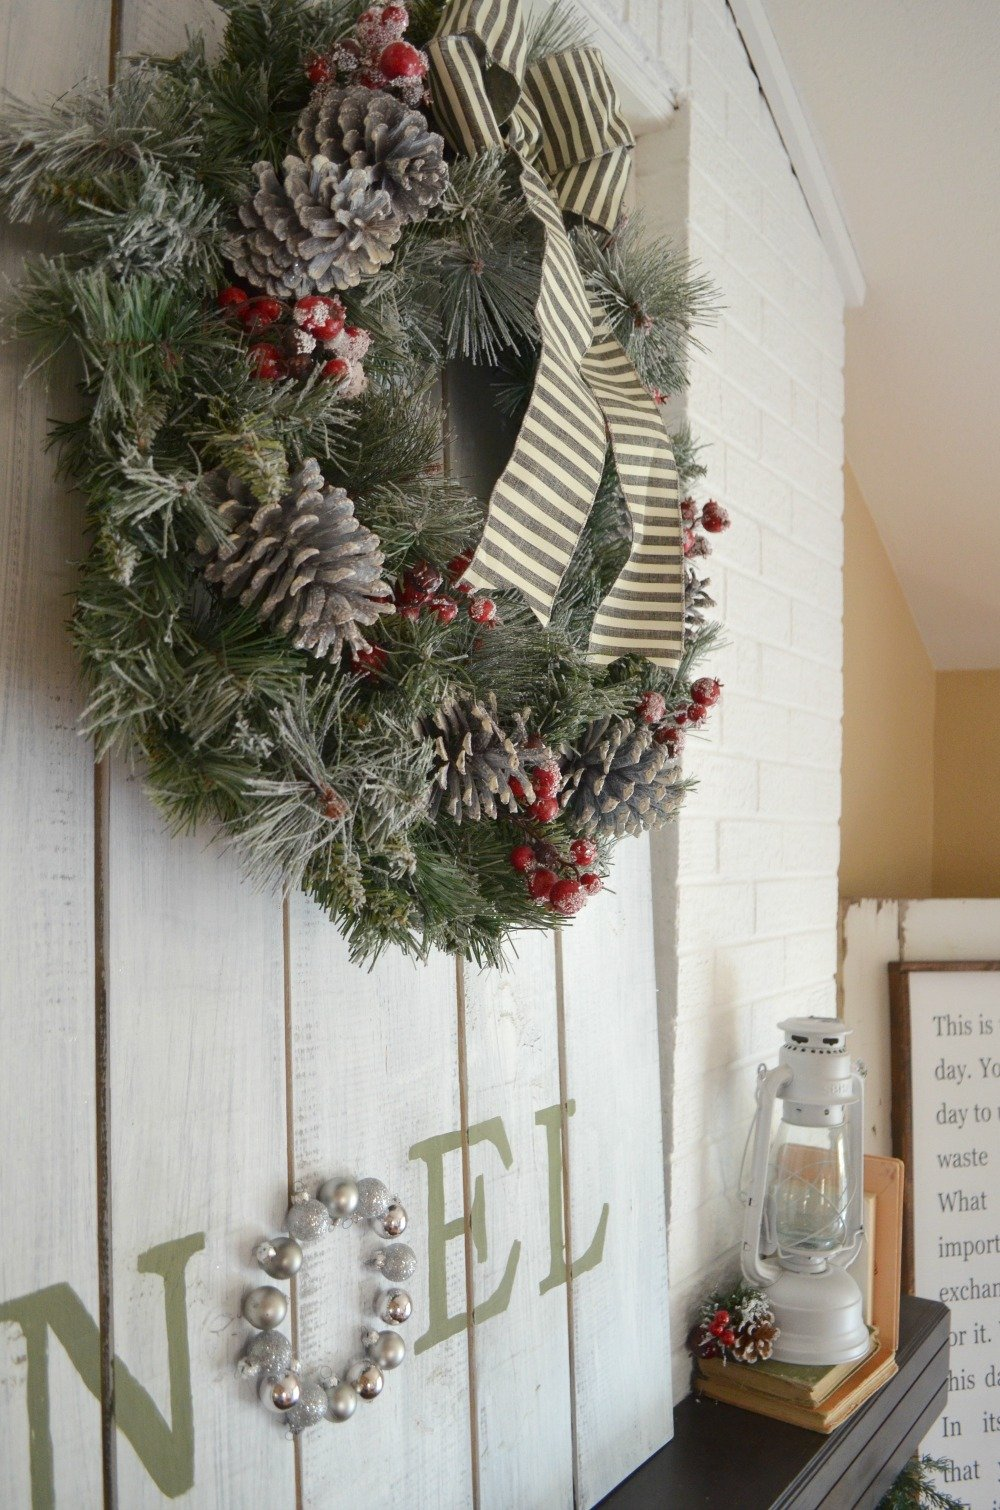 DIY Holiday Ornament Display